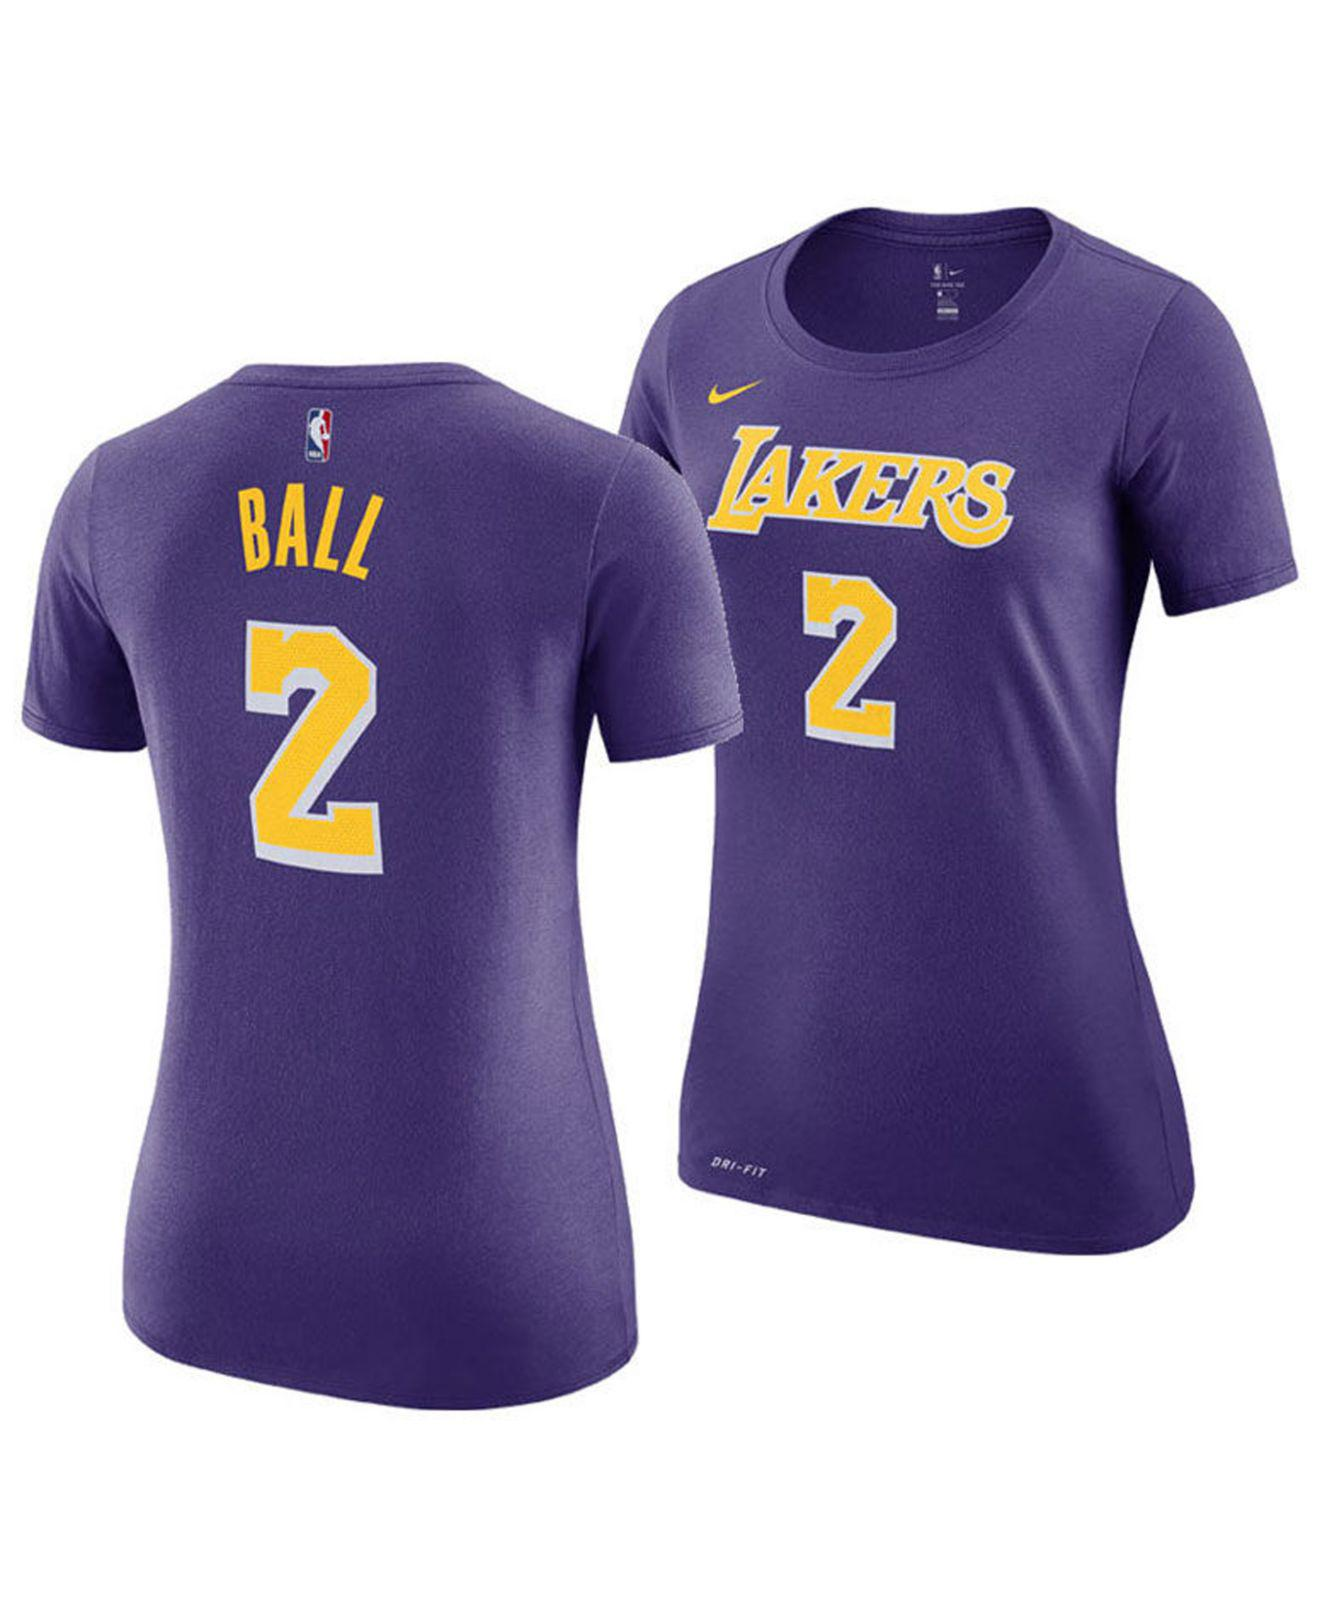 Nike. Women s Purple Lonzo Ball Los Angeles Lakers Name And Number Player T- shirt ec875f381